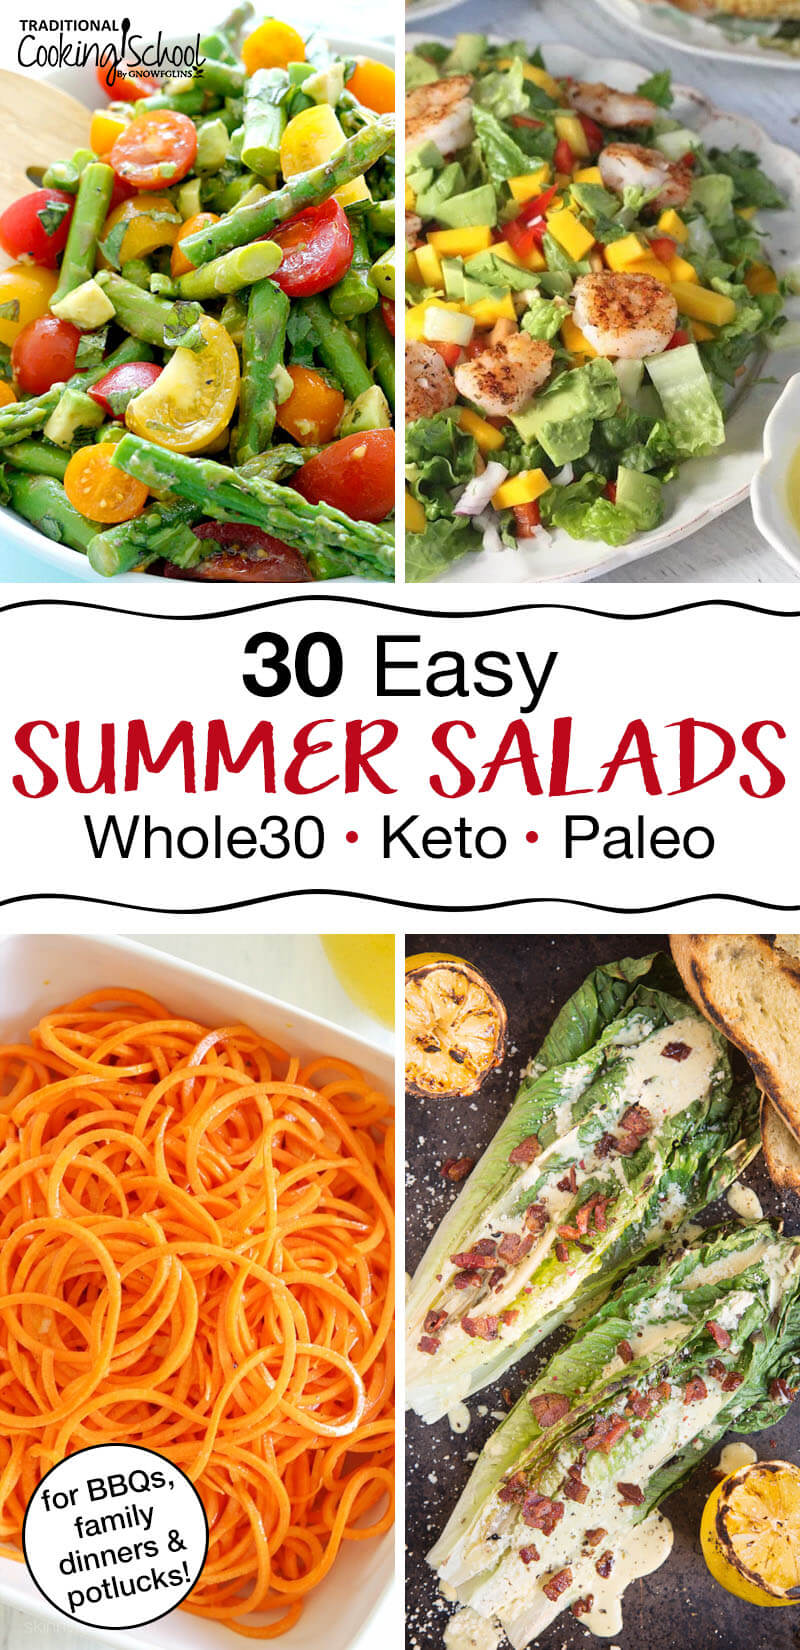 "photo collage of a beautiful array of summer salads, including carrots, grilled romaine lettuce, corn, asparagus, and more, with text overlay: ""30 Easy Summer Salads for BBQs, family dinners, & potlucks! (Whole30, Keto, Paleo)"""